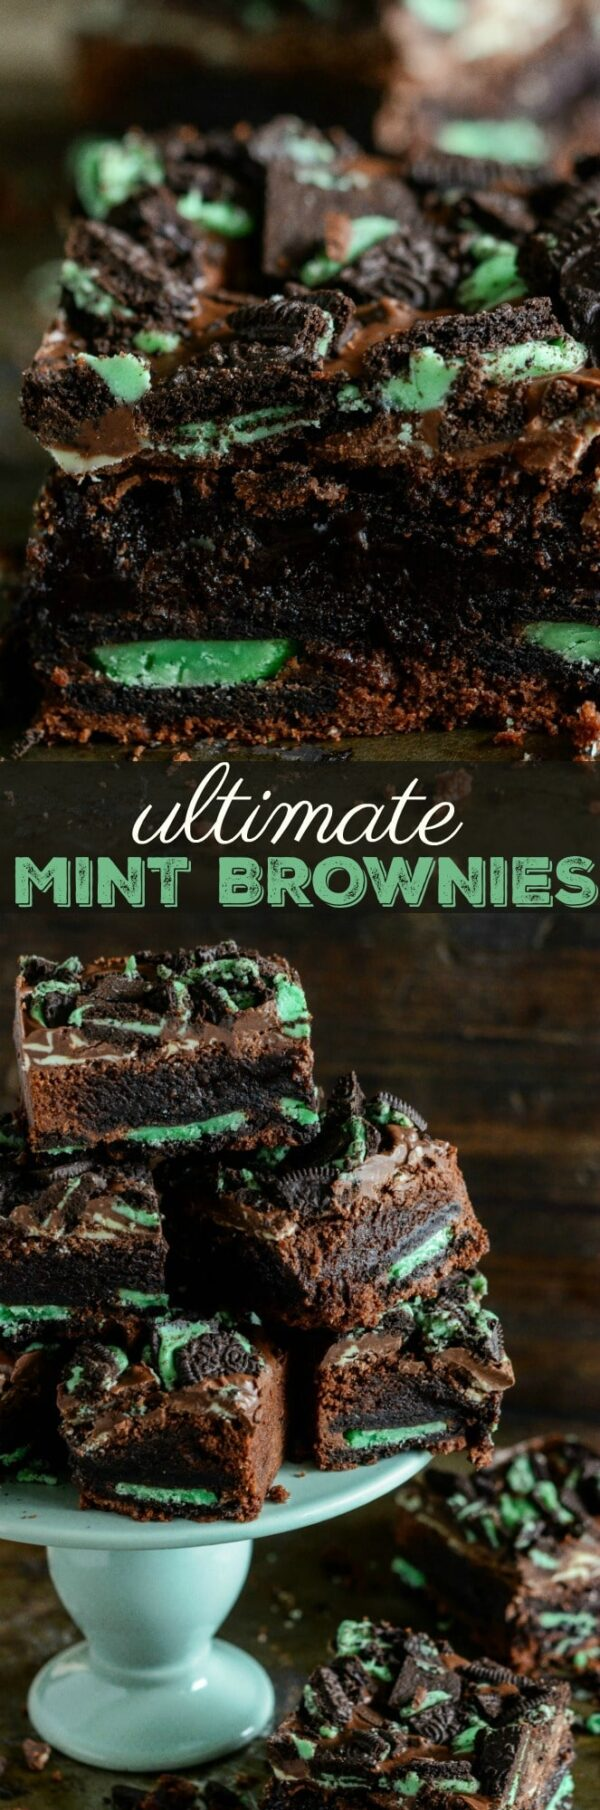 Ultimate Mint Brownies: chocolate fudge brownies, with a layer of mint oreo cookies baked into them, are topped with sweet andes mints and crushed mint oreos!